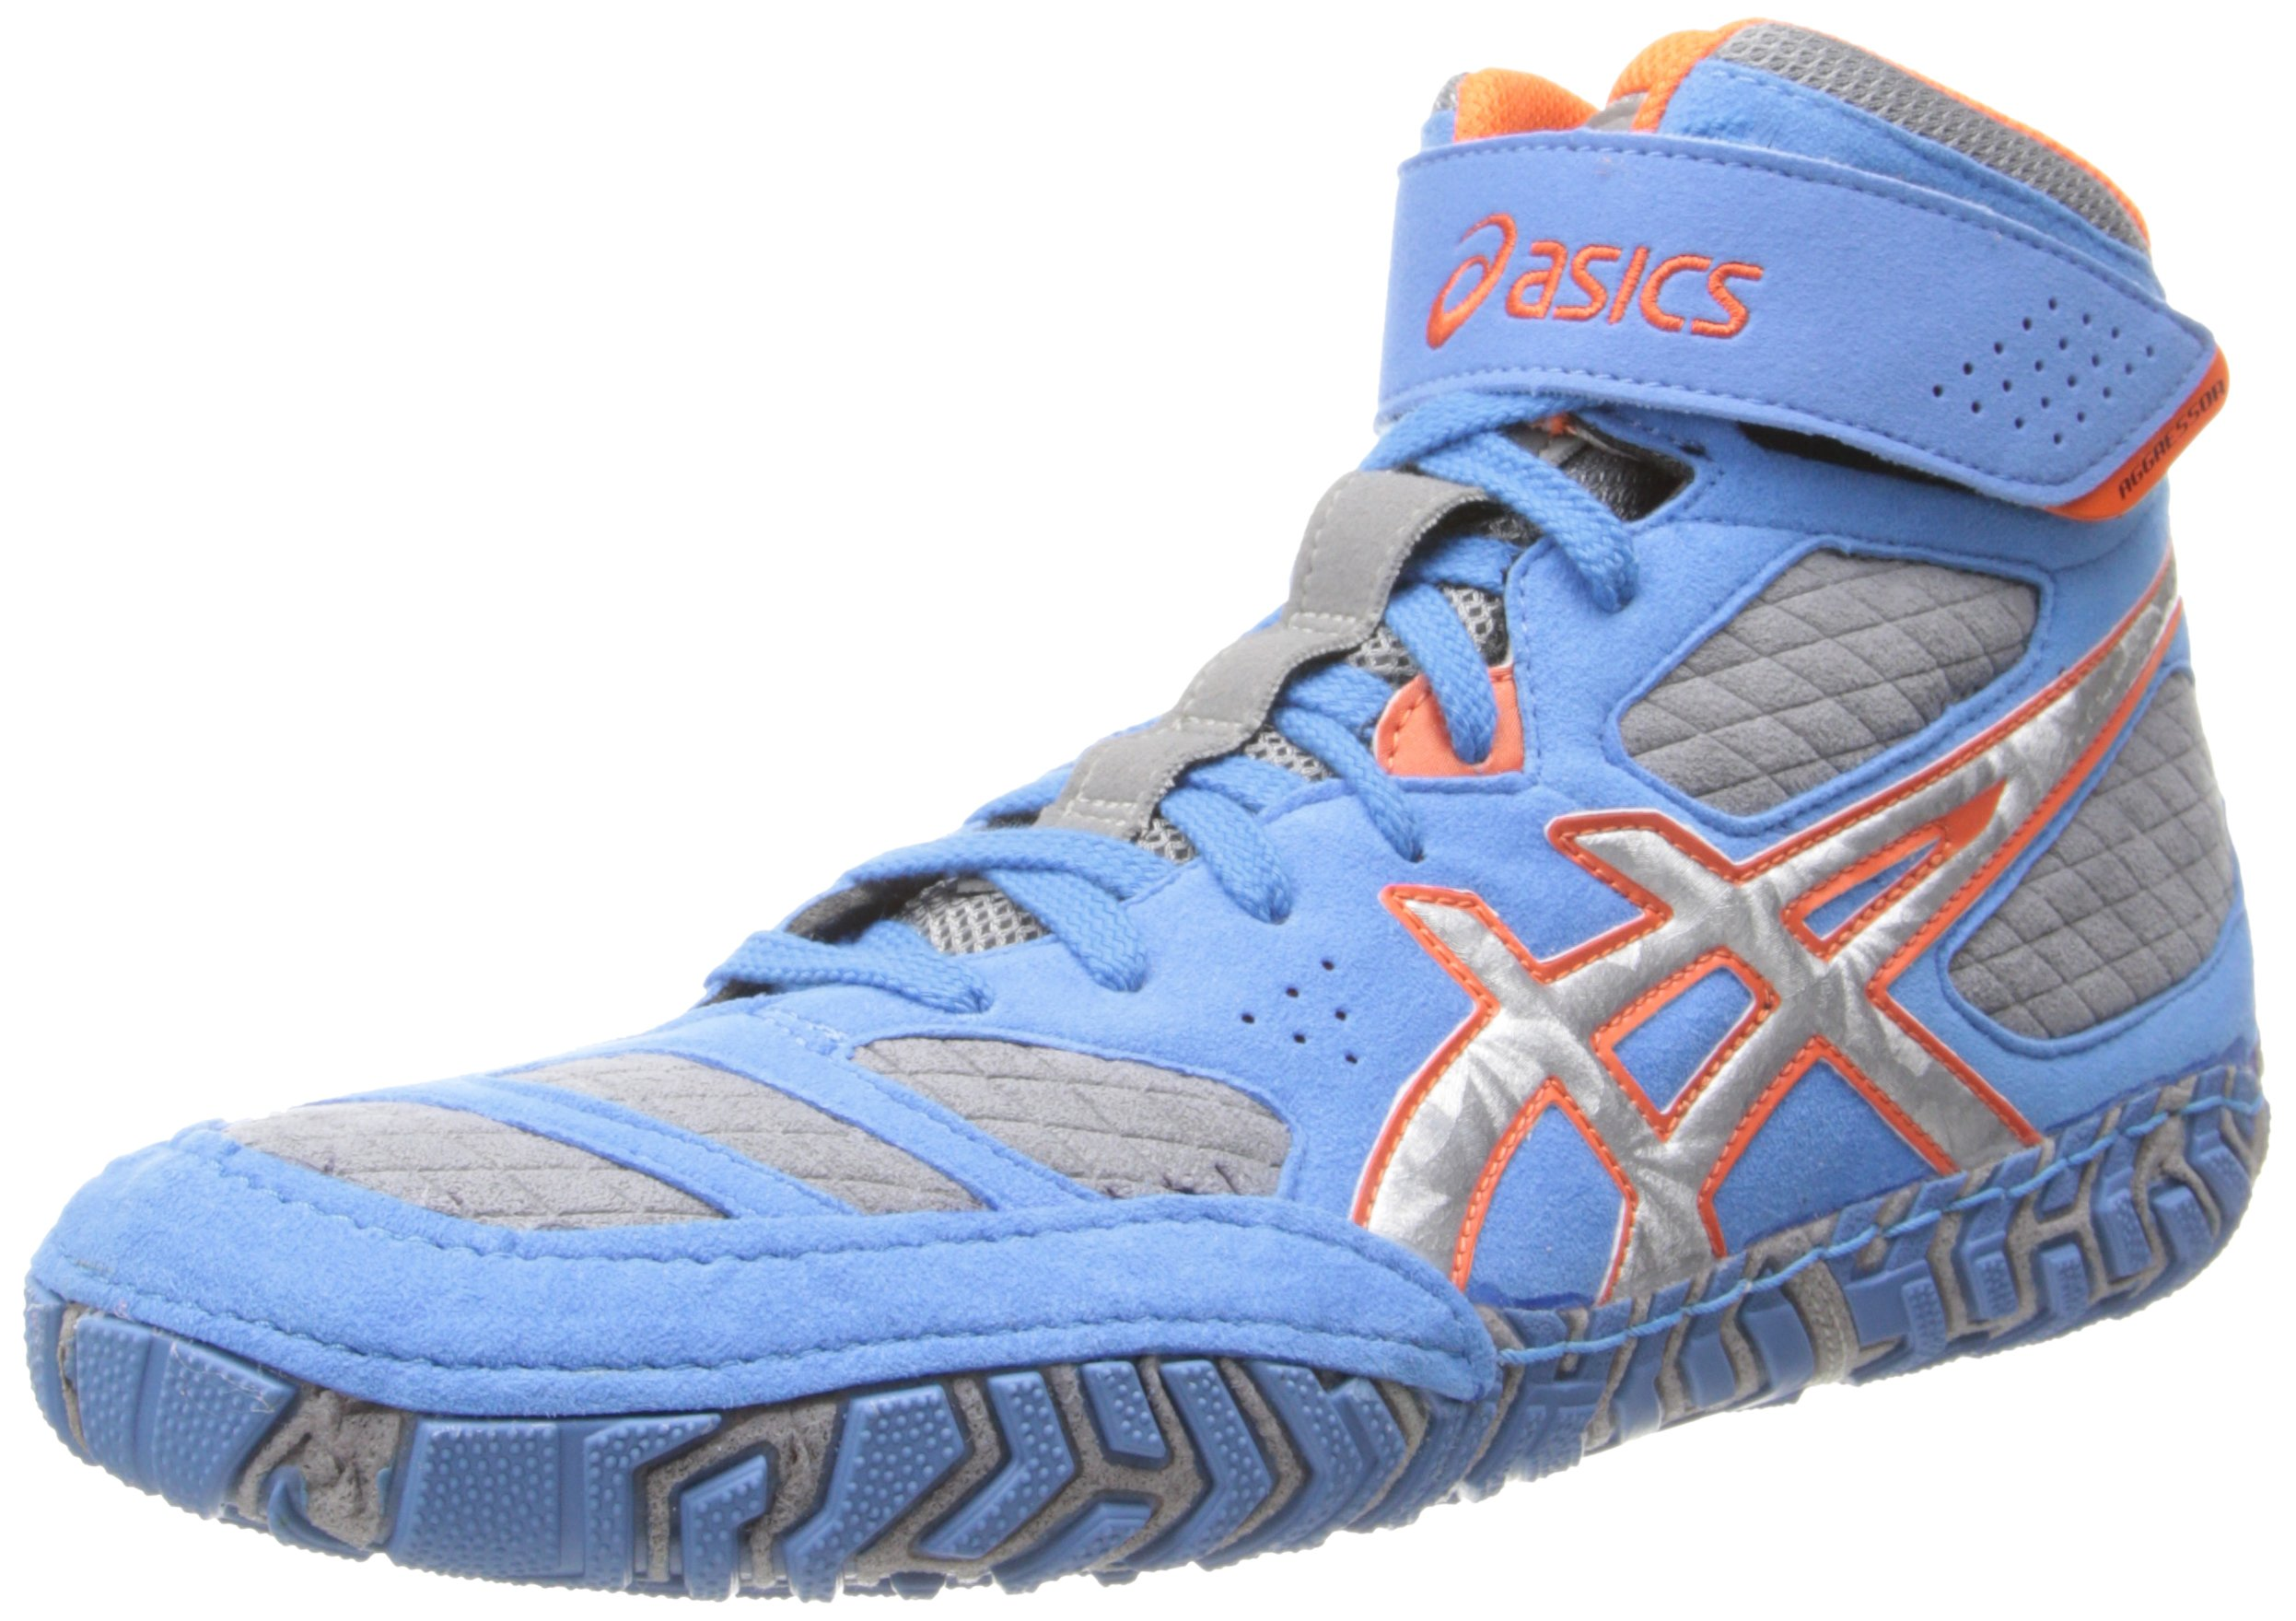 Asics Men's Aggressor 2 Wrestling Shoe,Dusty Blue/Silver/Red Orange,12 M US by ASICS